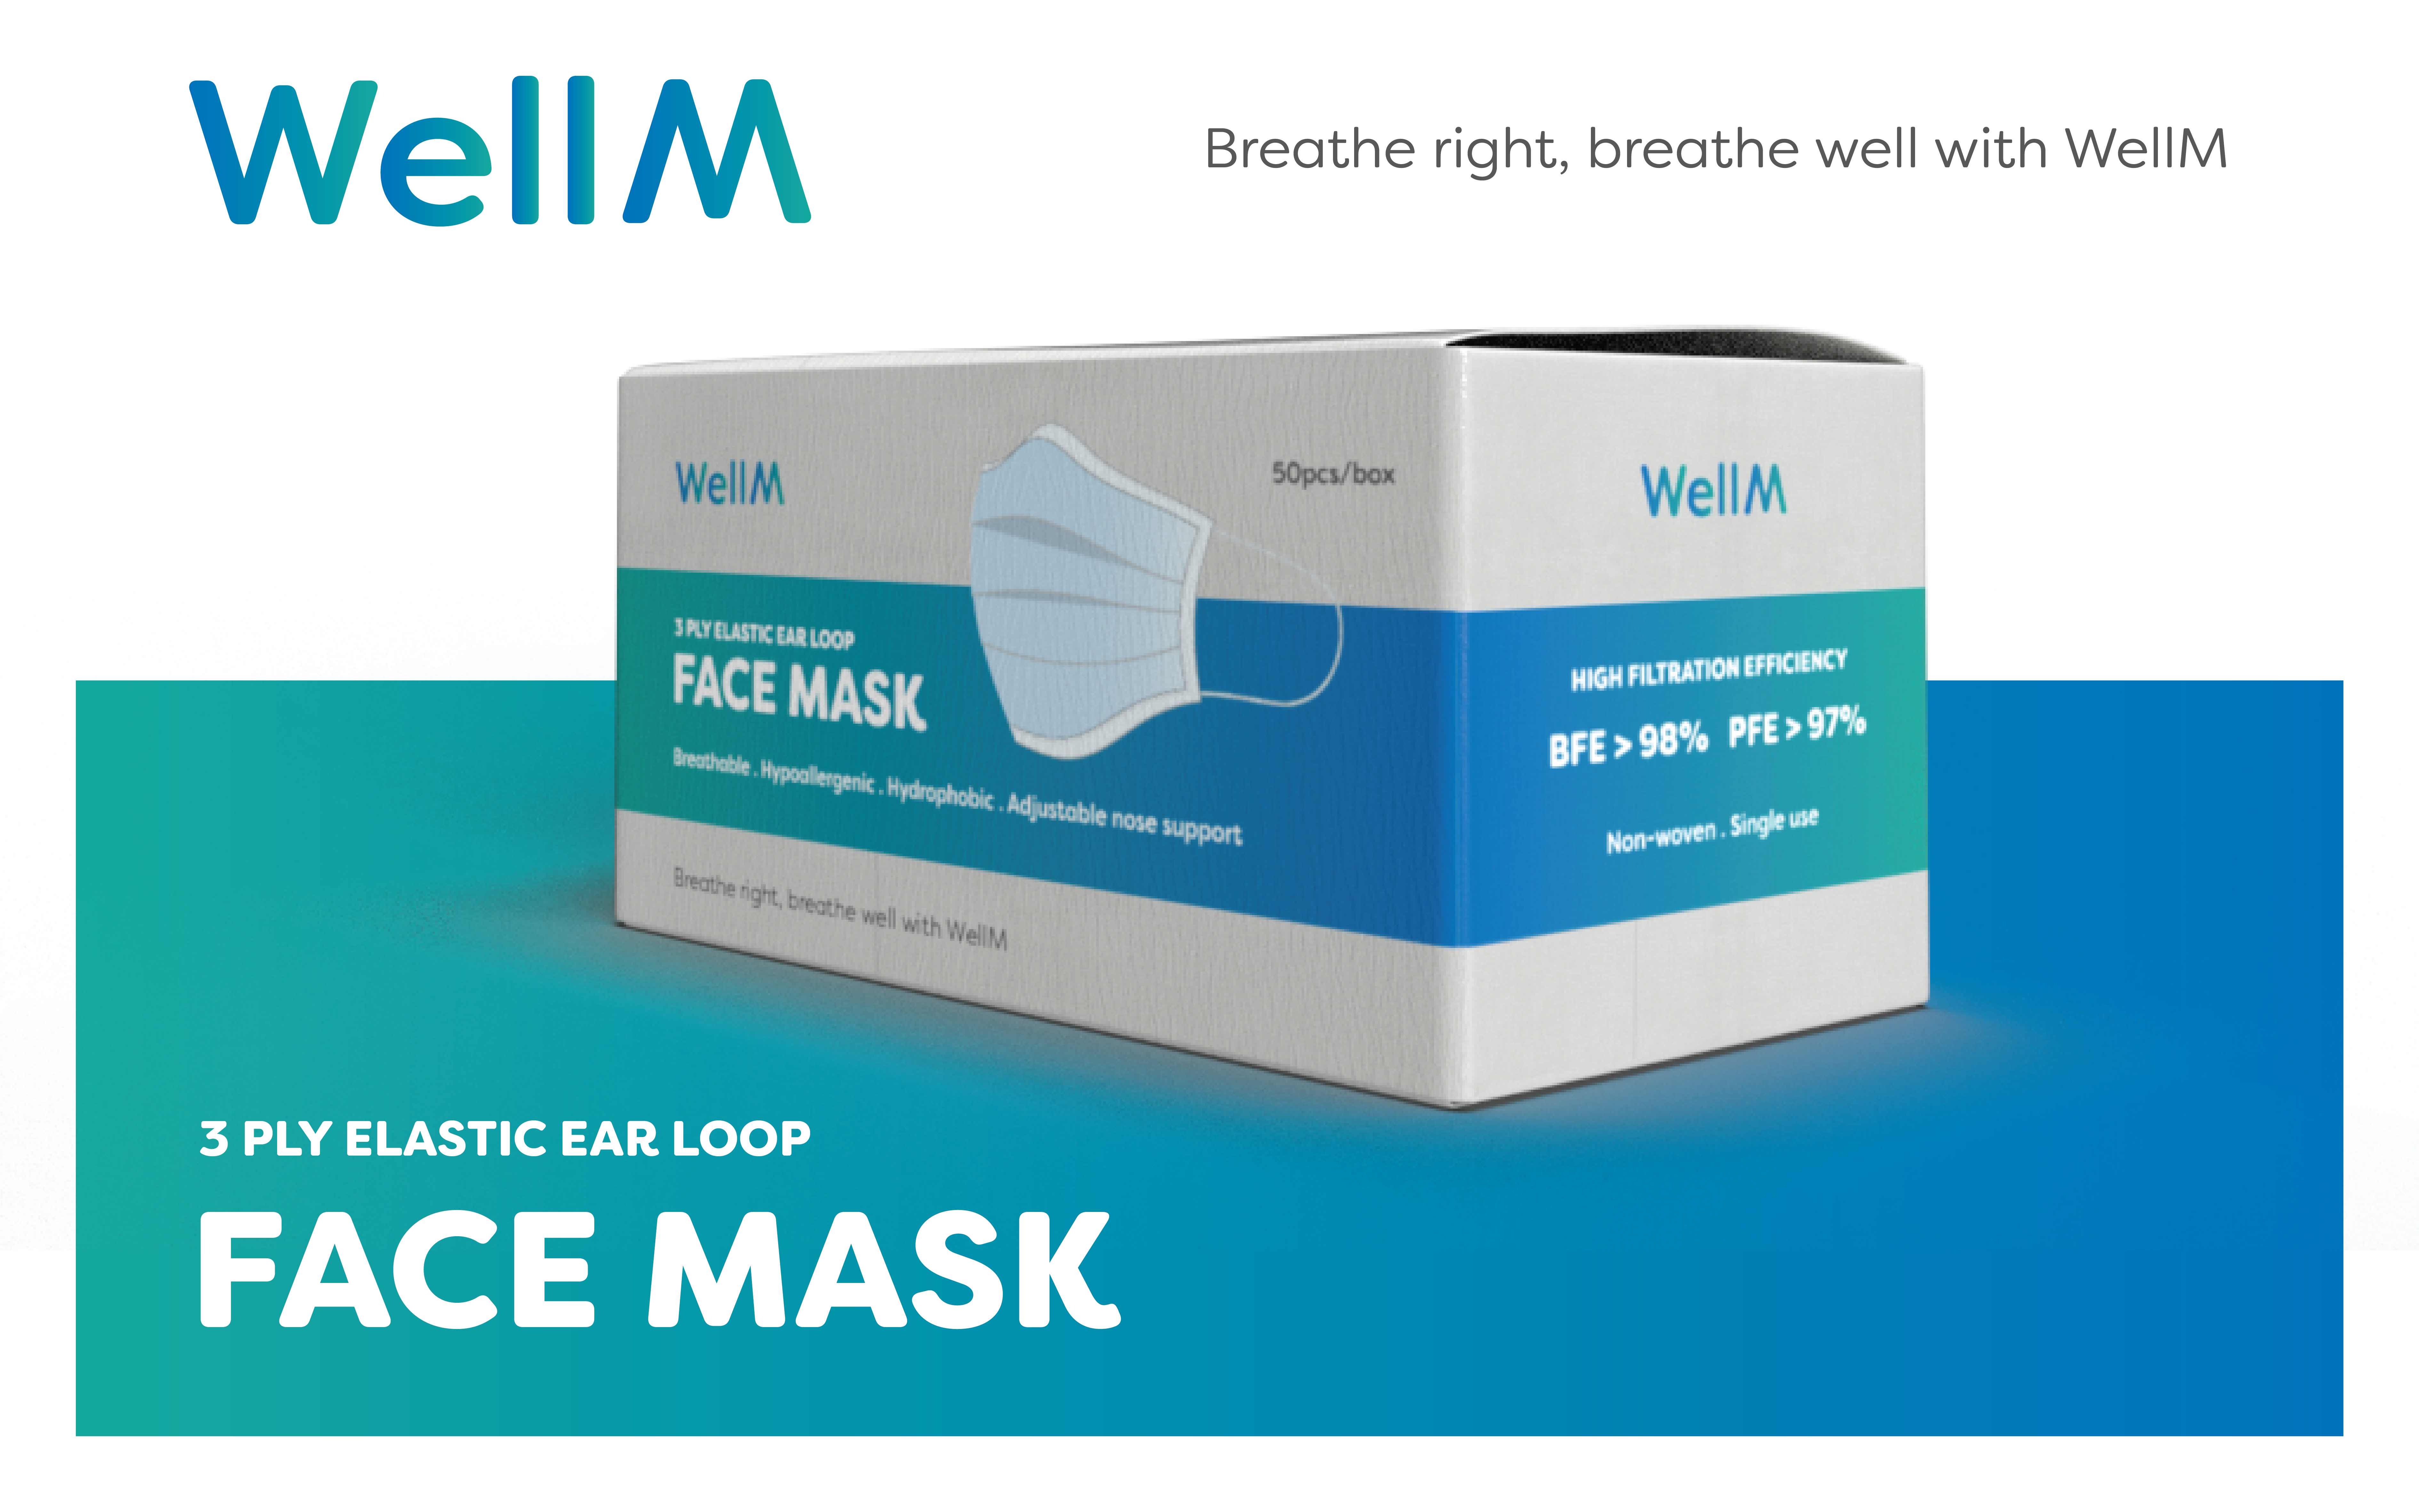 WellM Face Mask